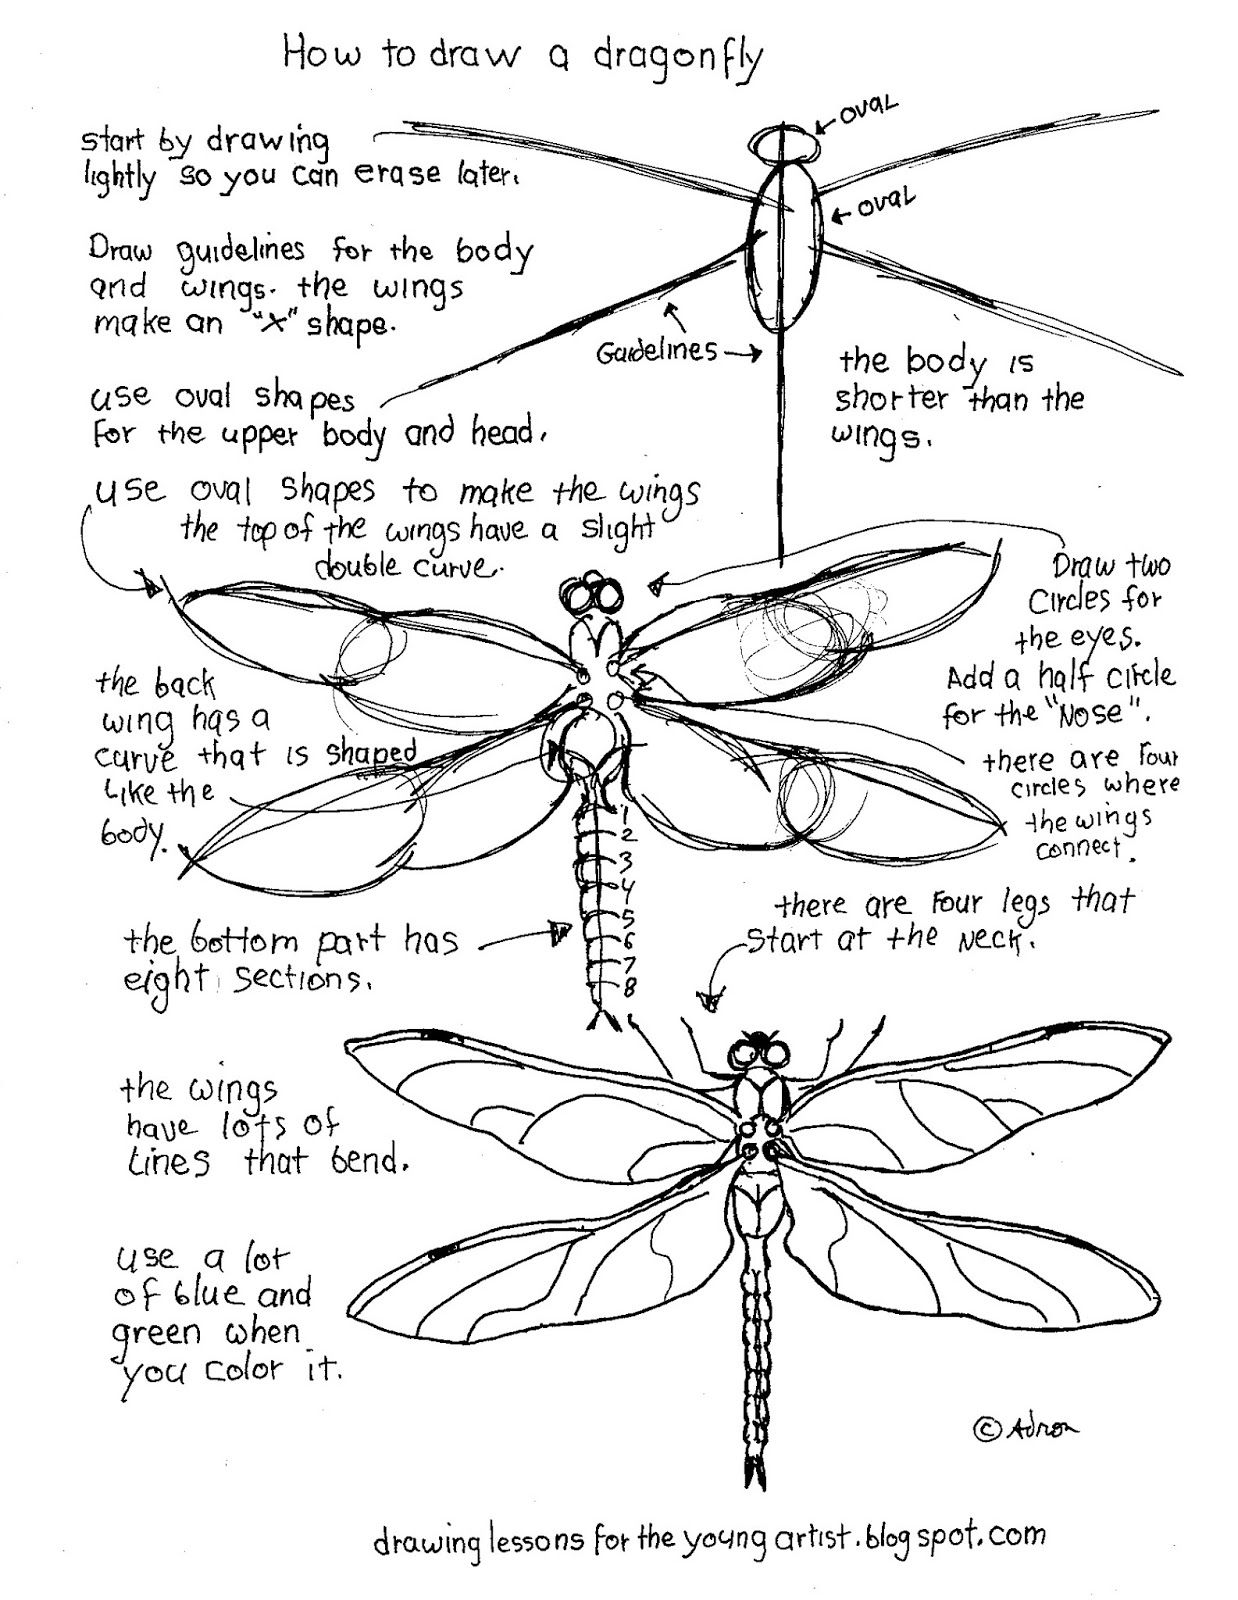 Printable How To Draw A Dragonfly Worksheet